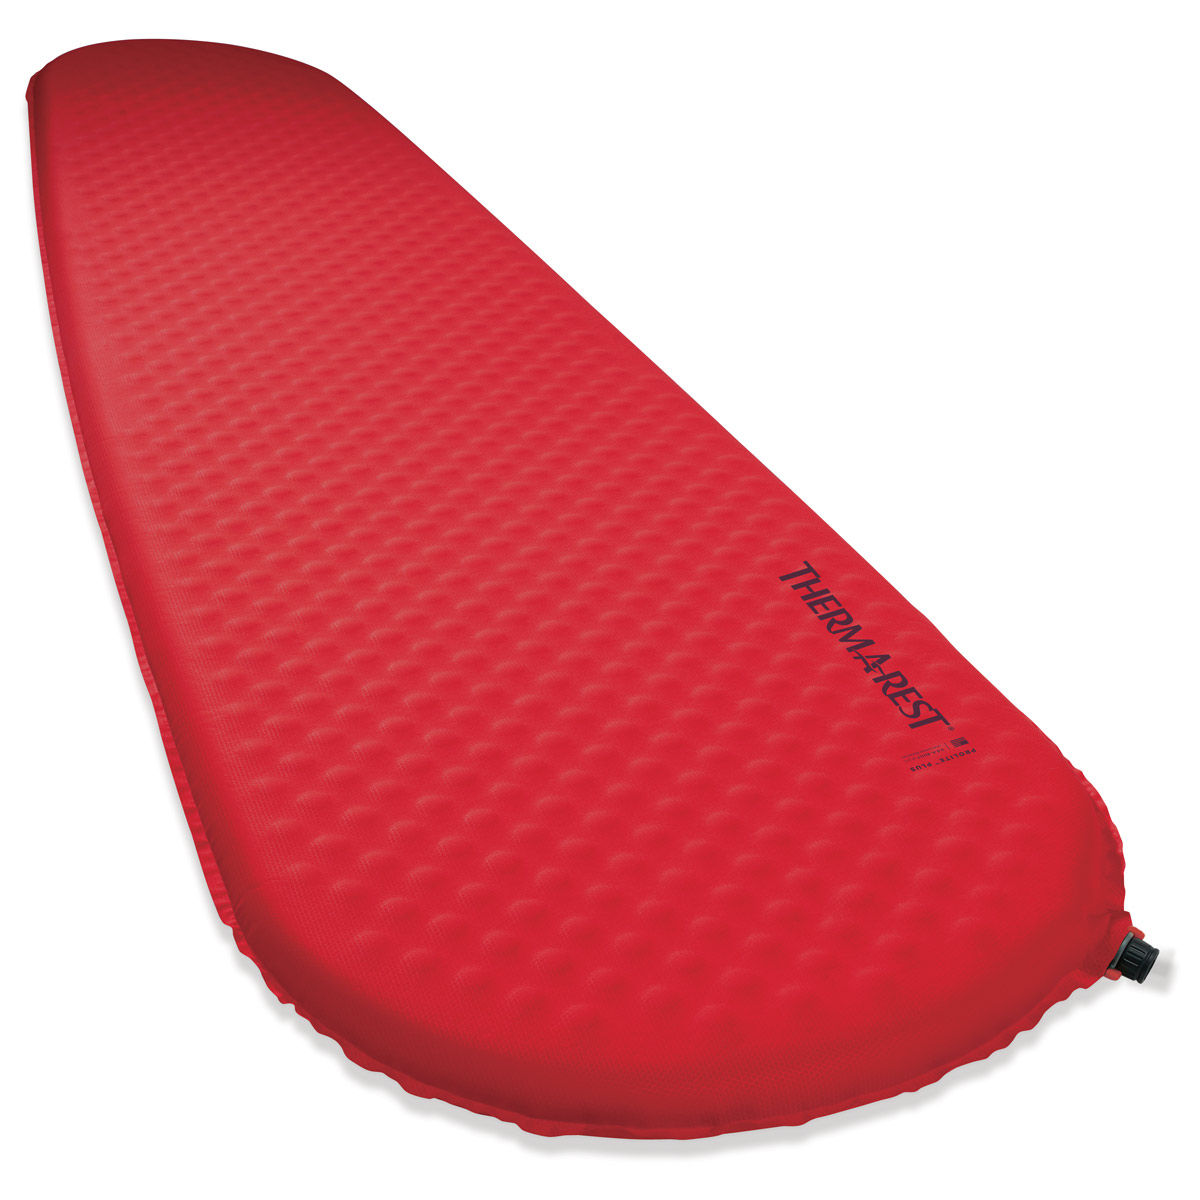 thermarest sleeping mat